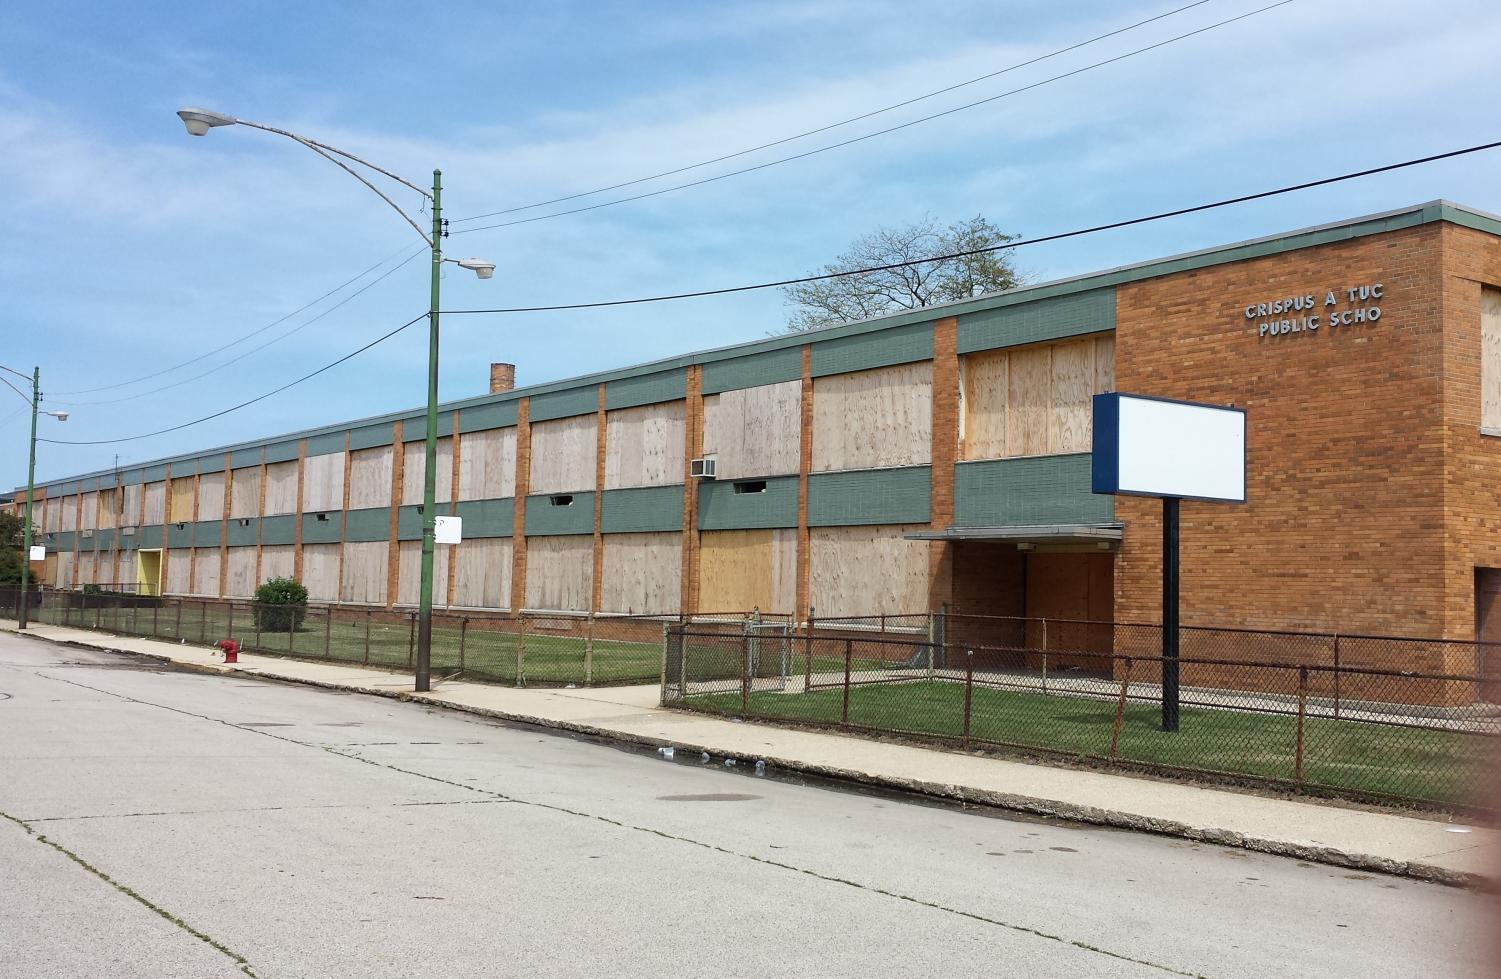 The shuttered Crispus Attucks Public School in the Bronzeville neighborhood was closed in 2008 and has remained empty ever since. (Photo courtesy of steven kevil | wikimedia commons)